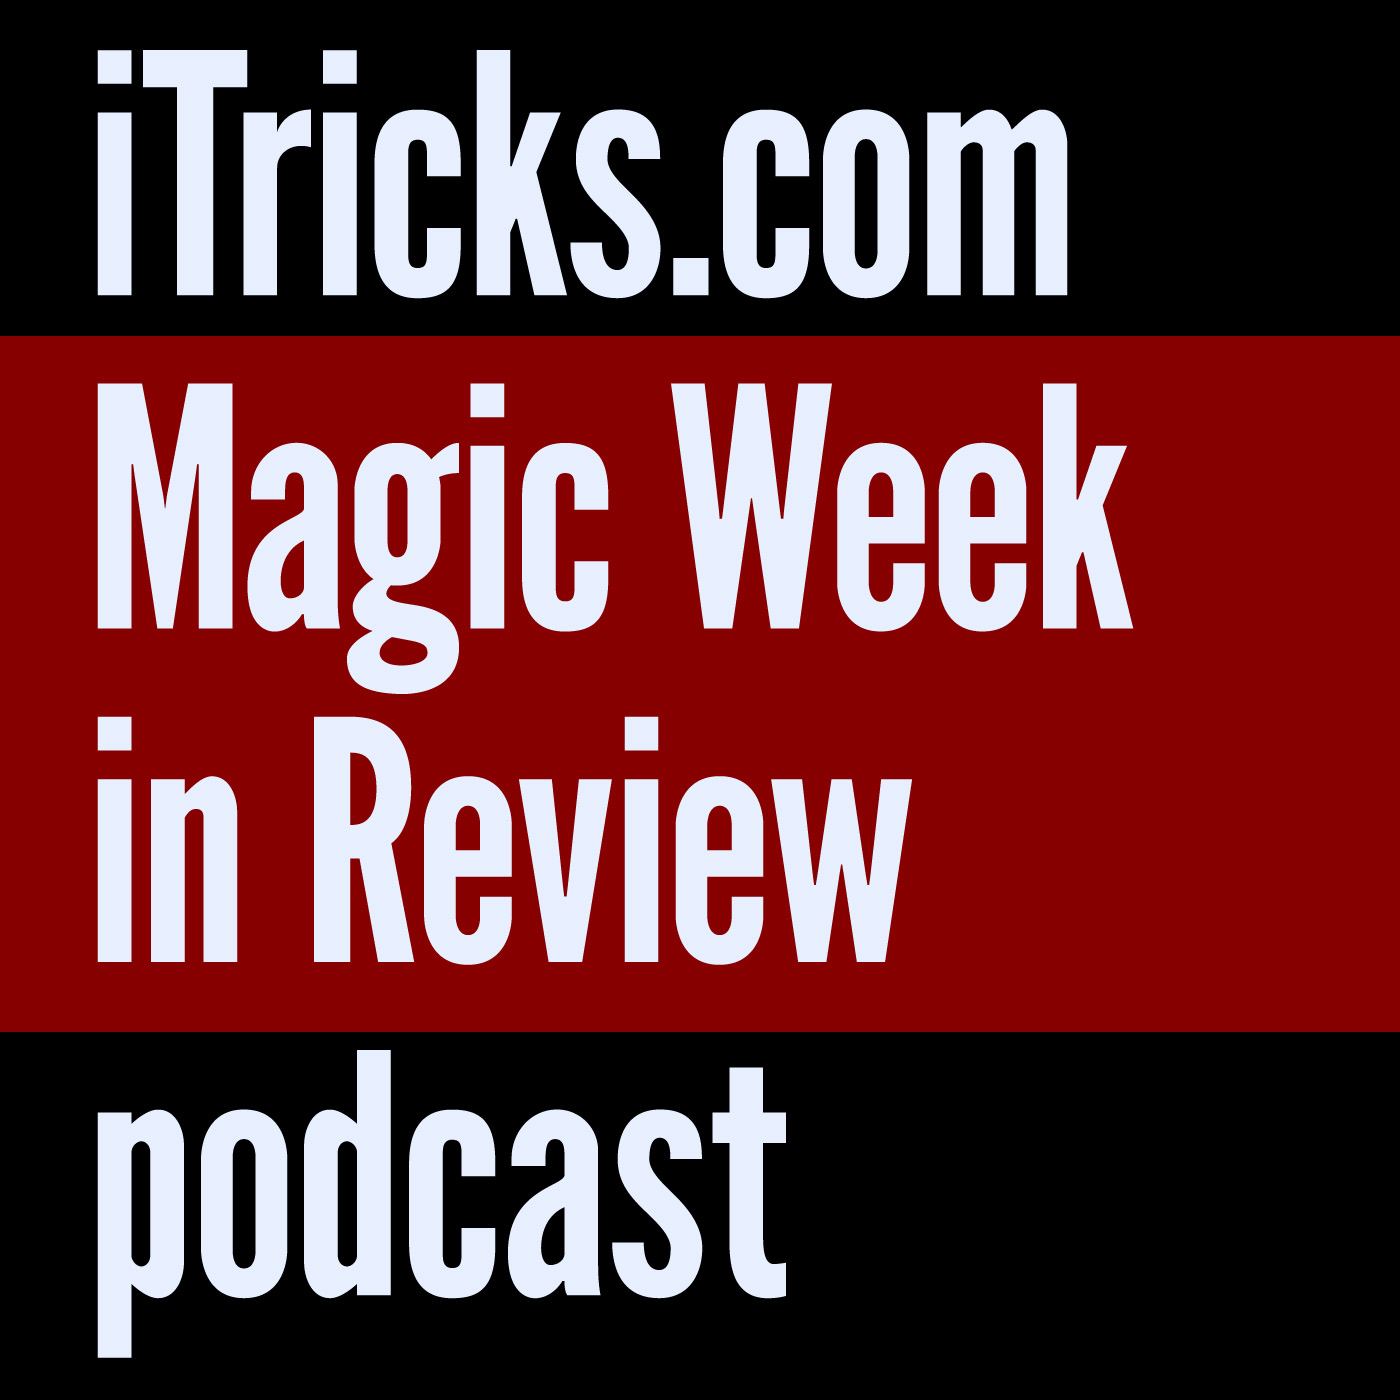 iTricks.com Magic News, Magic Videos and Podcasts